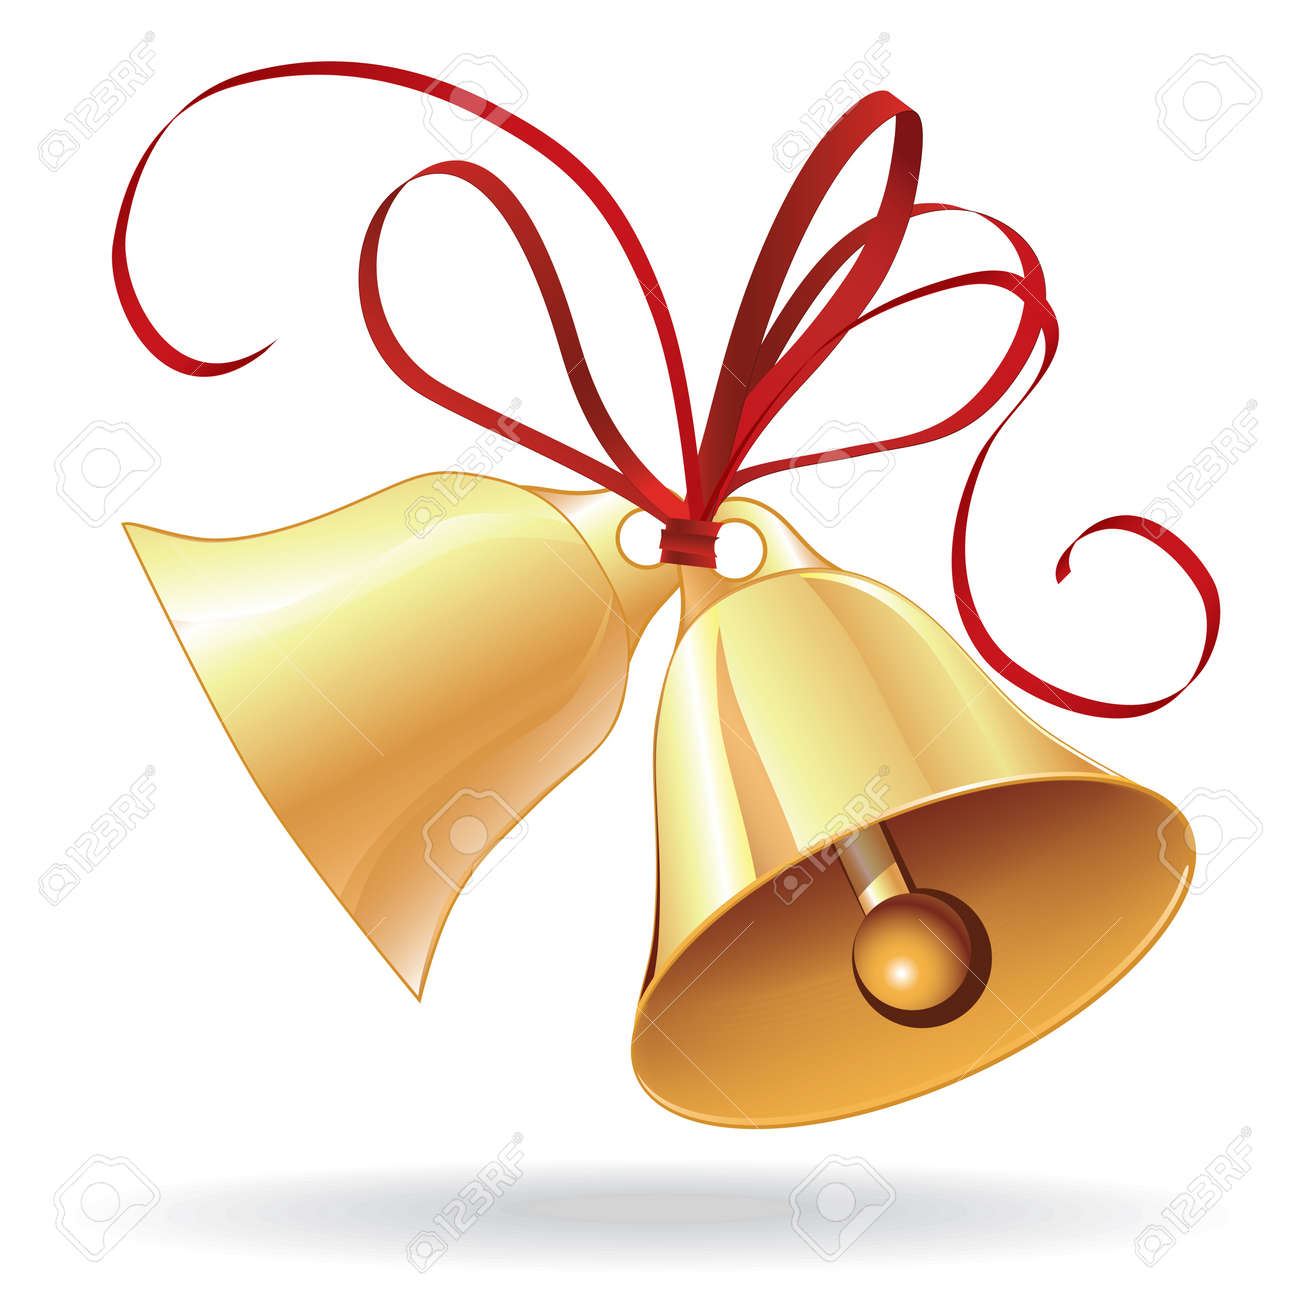 jingle bells stock photos royalty free jingle bells images and